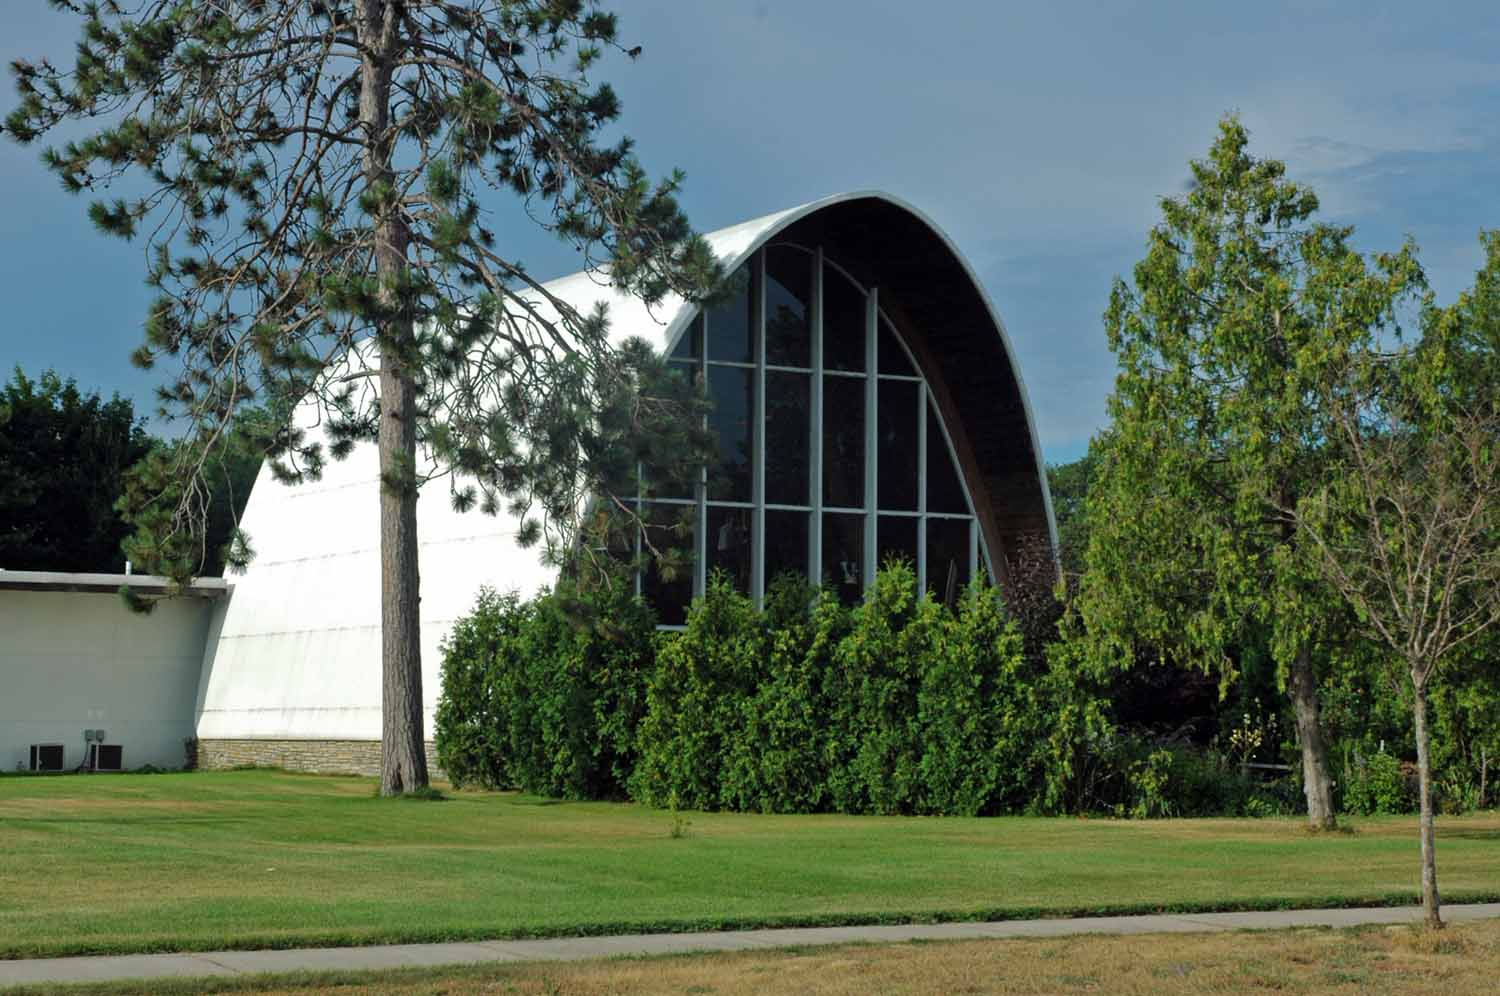 Our new church home - St Michael's of Traverse City